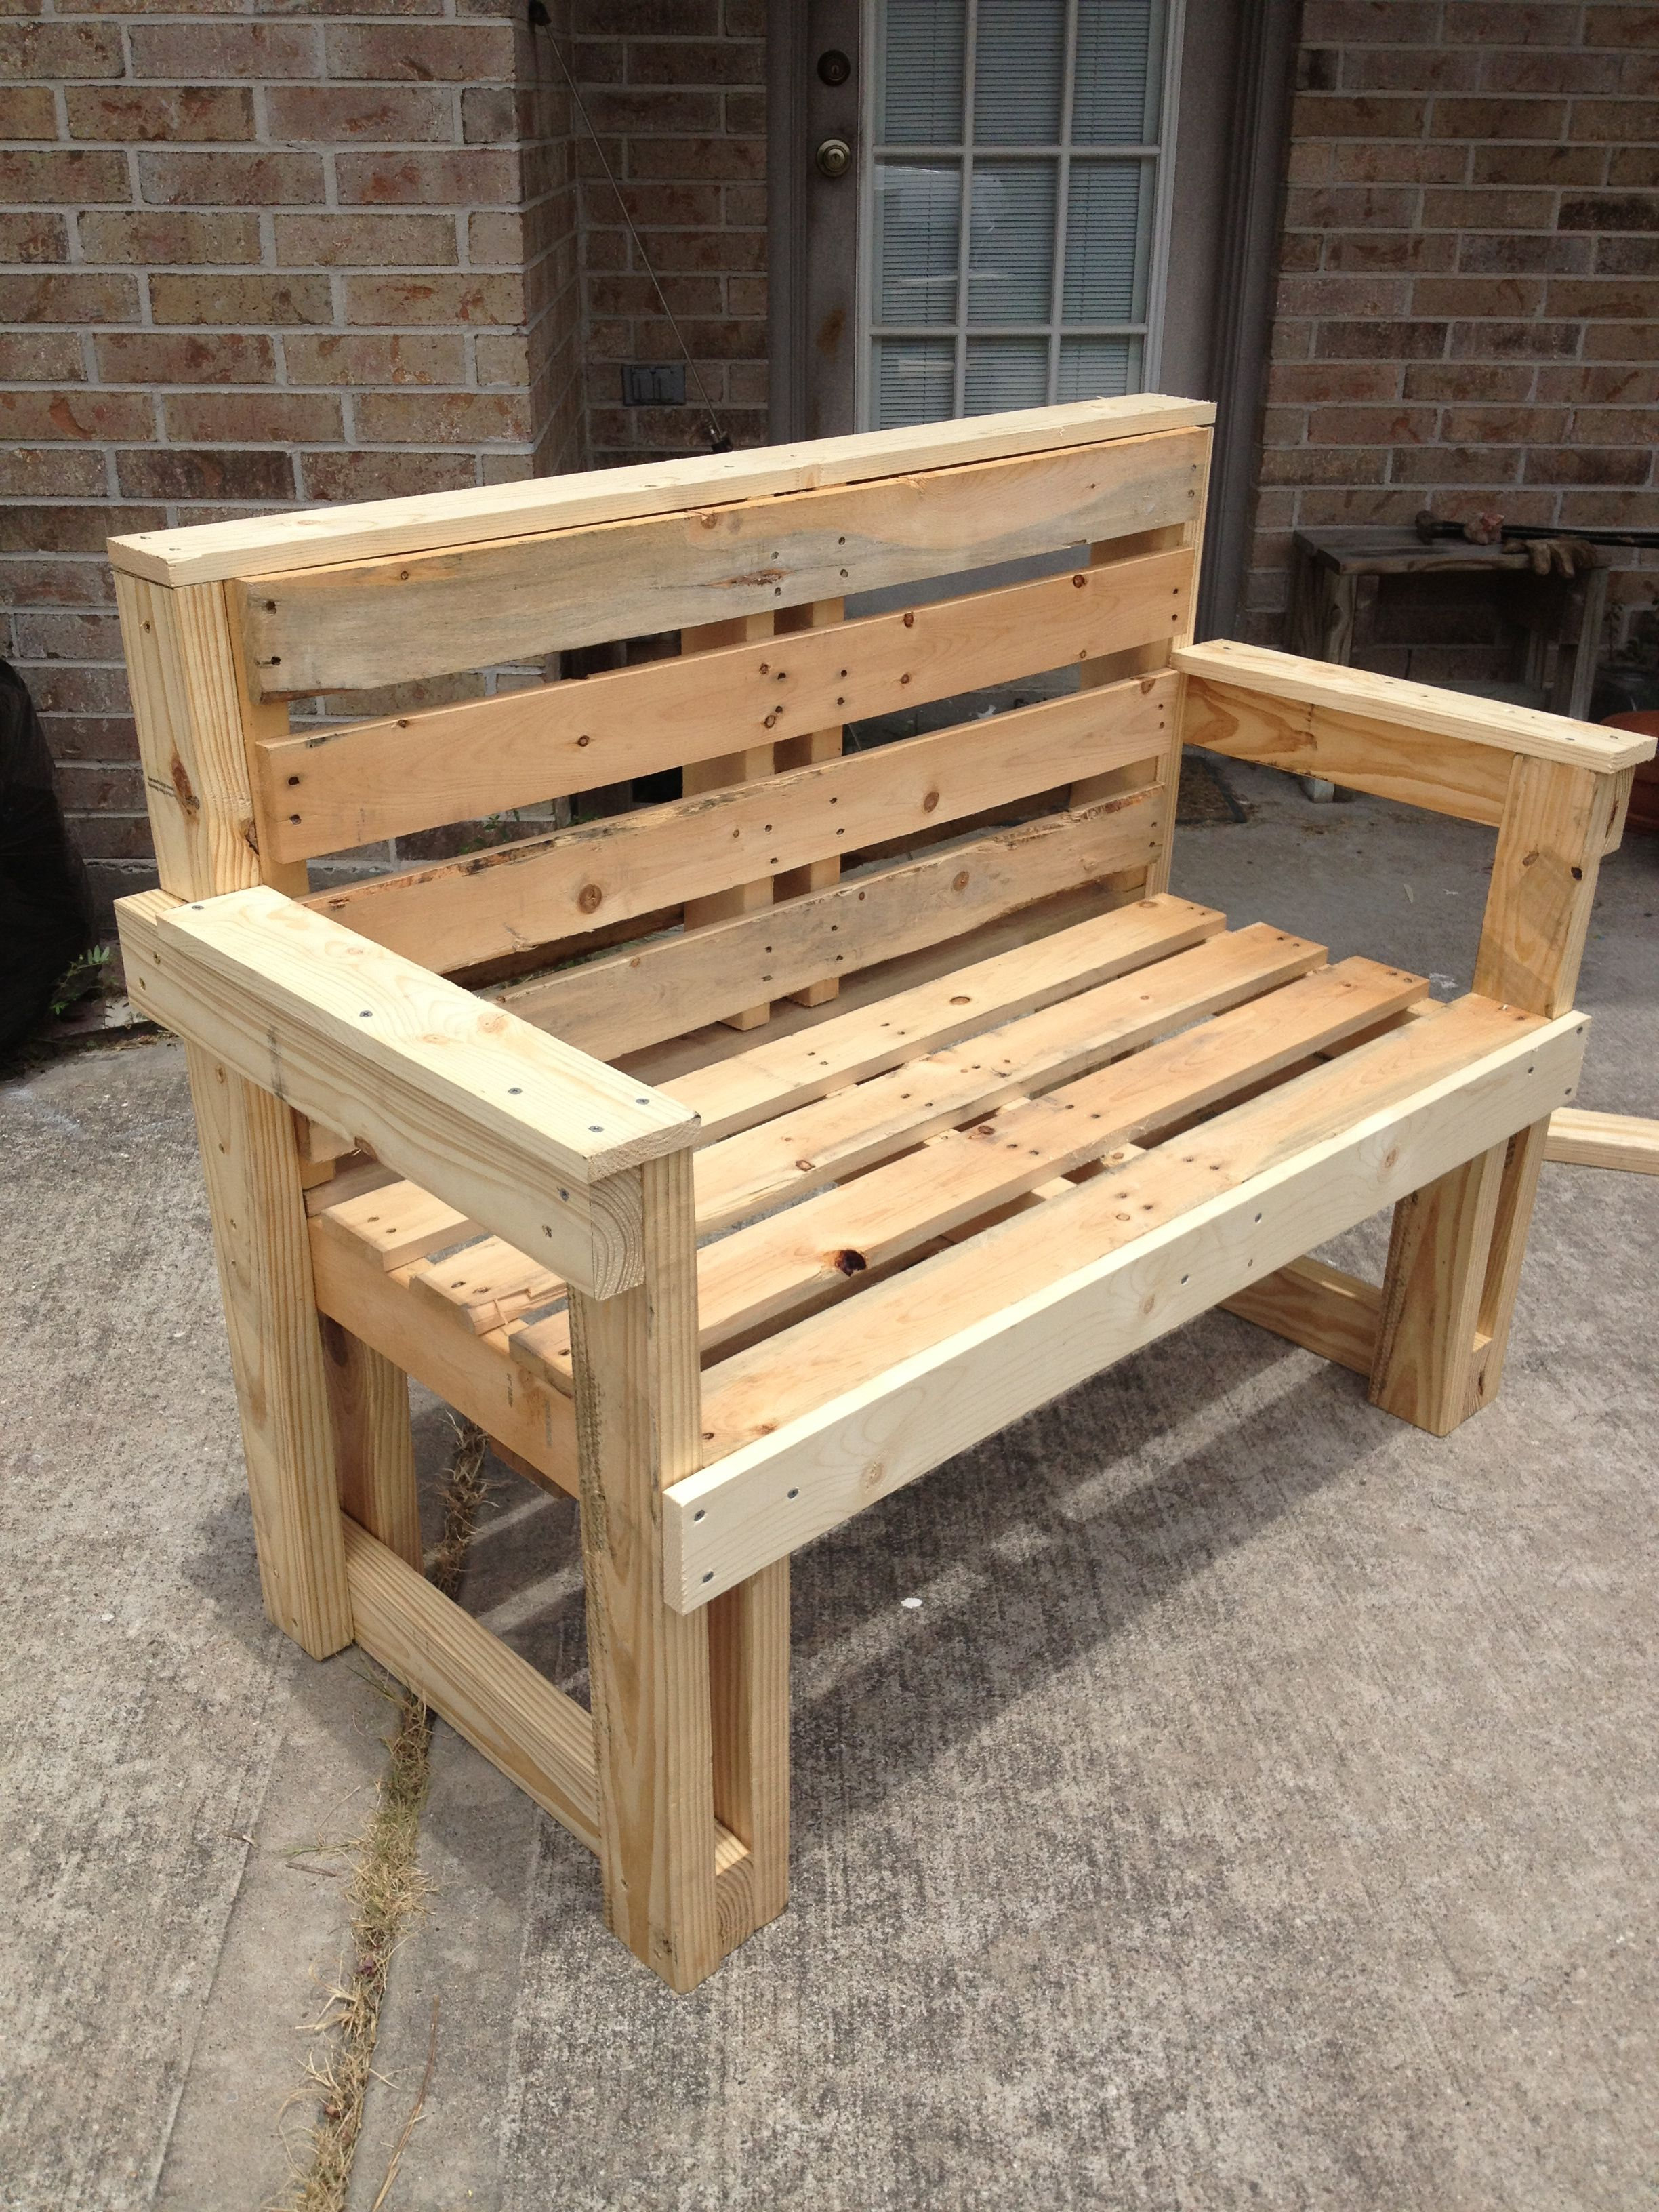 Pallet furniture pallet projects pinterest pallet for Pallet furniture projects